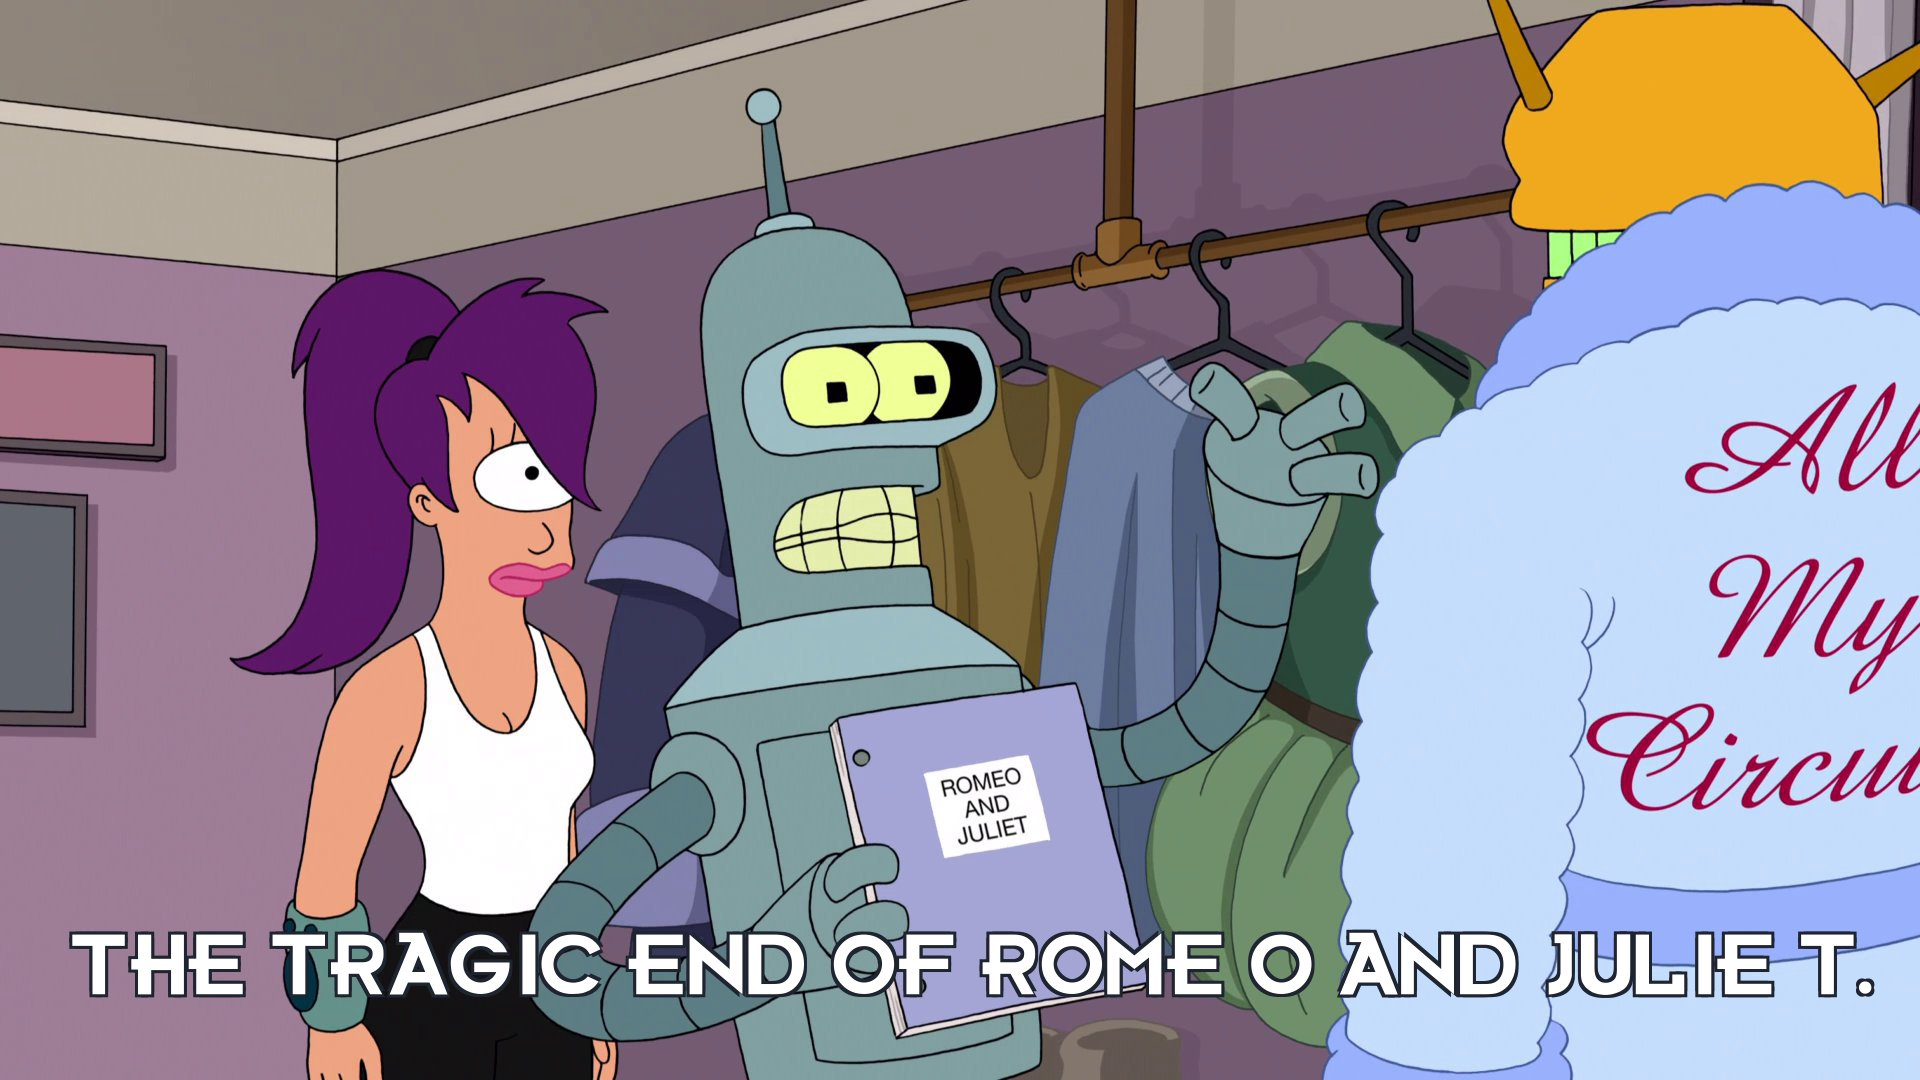 Bender Bending Rodriguez: The tragic end of Rome O and Julie T.